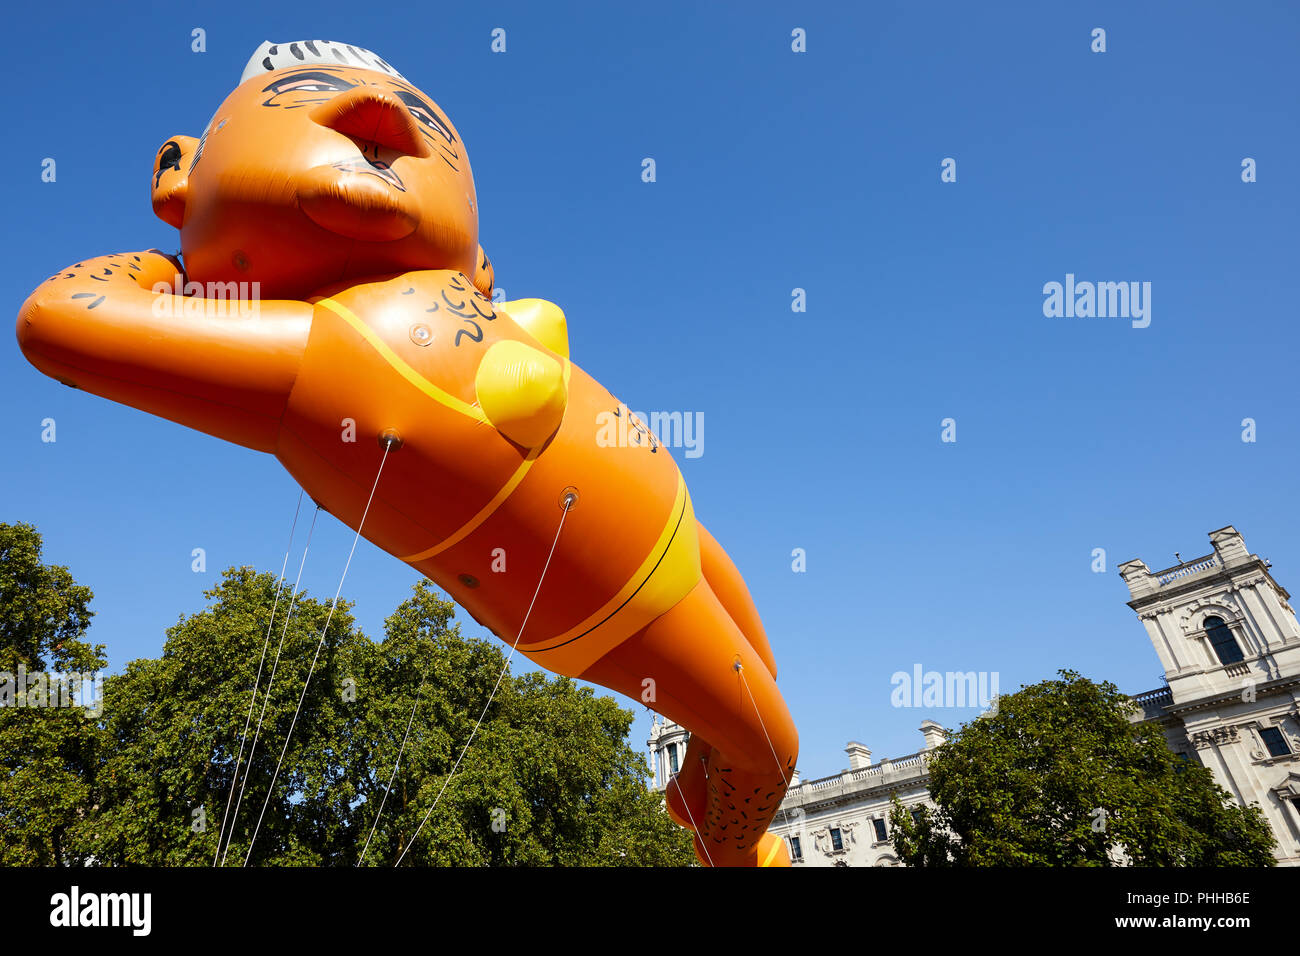 London, U.K. - 1 September 2018: A balloon of London mayor Sadiq Khan is flown in Parliament Square at the Make London Safe protest. Credit: Kevin Frost/Alamy Live News - Stock Image